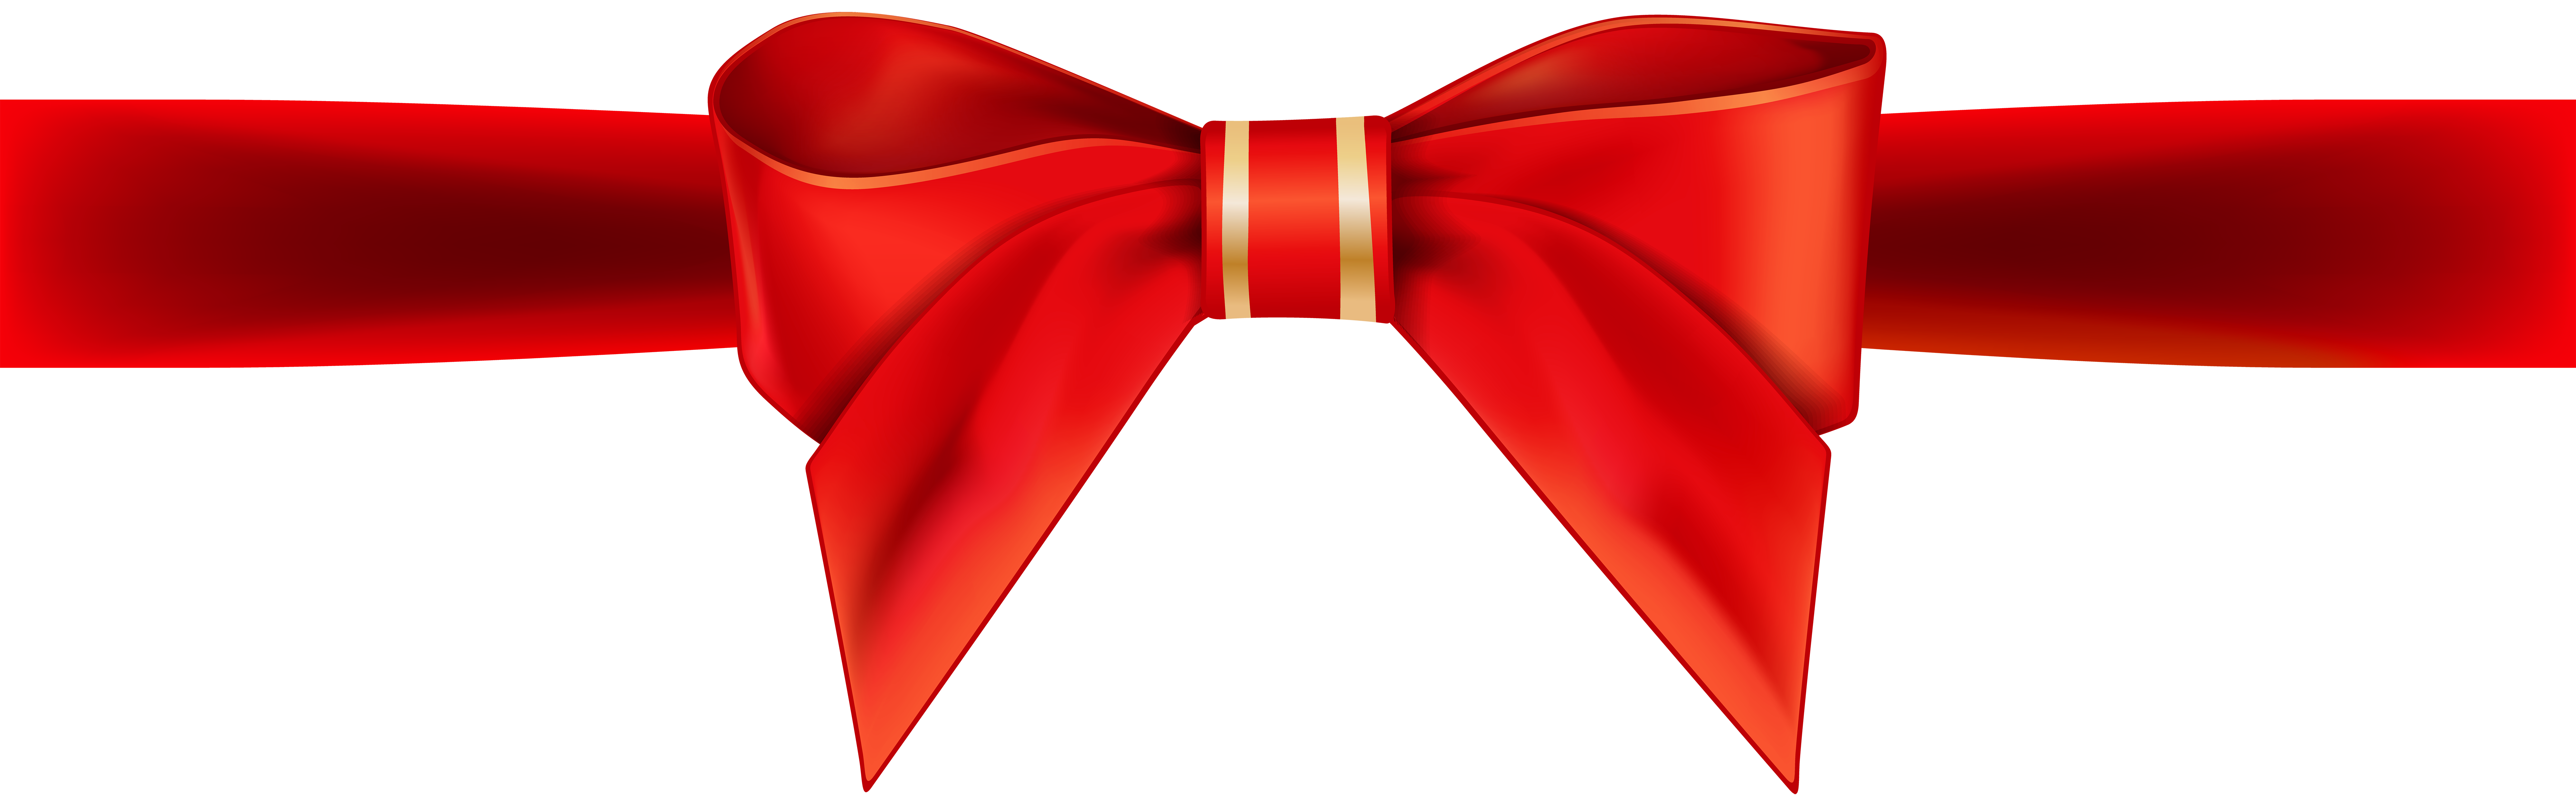 Red Ribbon Bow Transparent Png Clip Art Image Gallery Yopriceville High Quality Images And Transparent Png Free Clipa Ribbon Bows Red Ribbon Free Clip Art